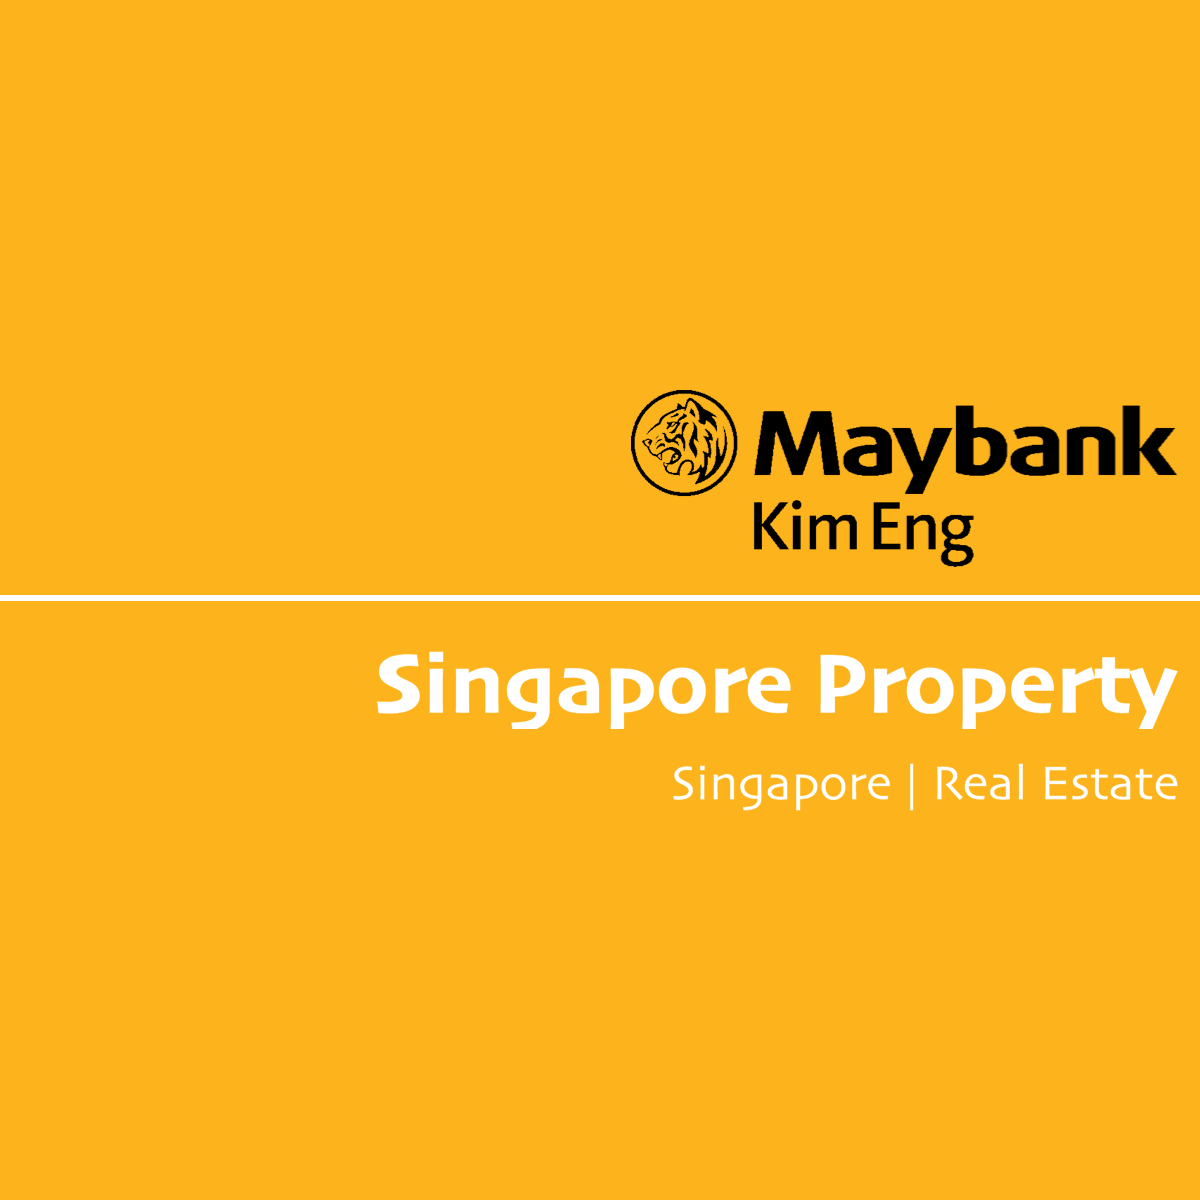 Singapore Property - Maybank Kim Eng 2017-10-06: The Tide Has Turned